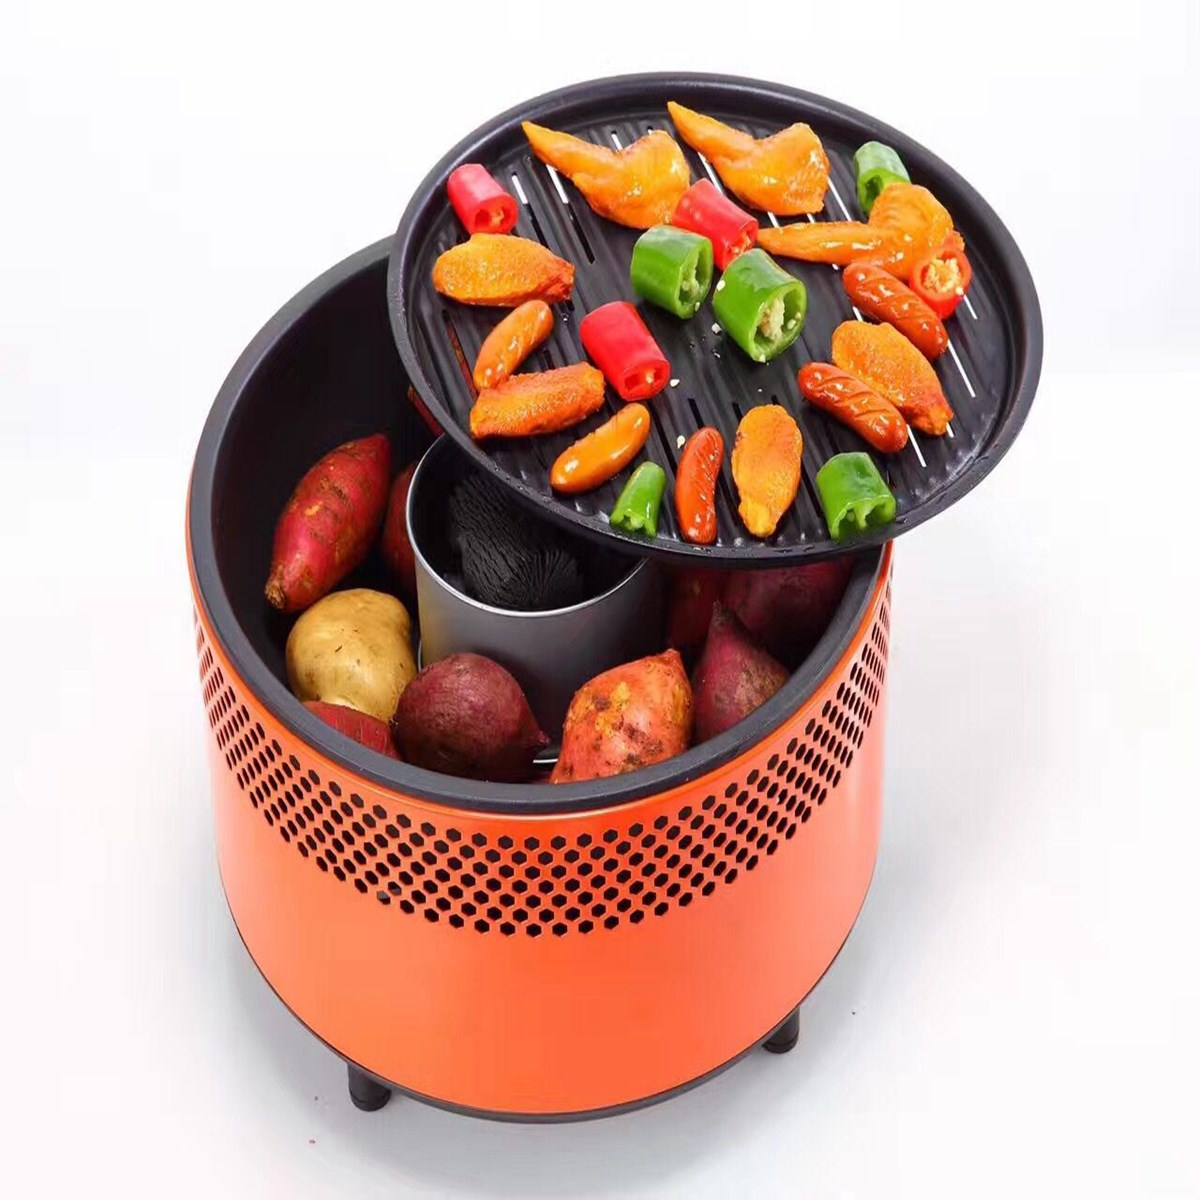 Enza Portable Outdoor BBQ - Great for the boat! - image No-3-small-bbq-pic on https://enzagroupsales.com.au